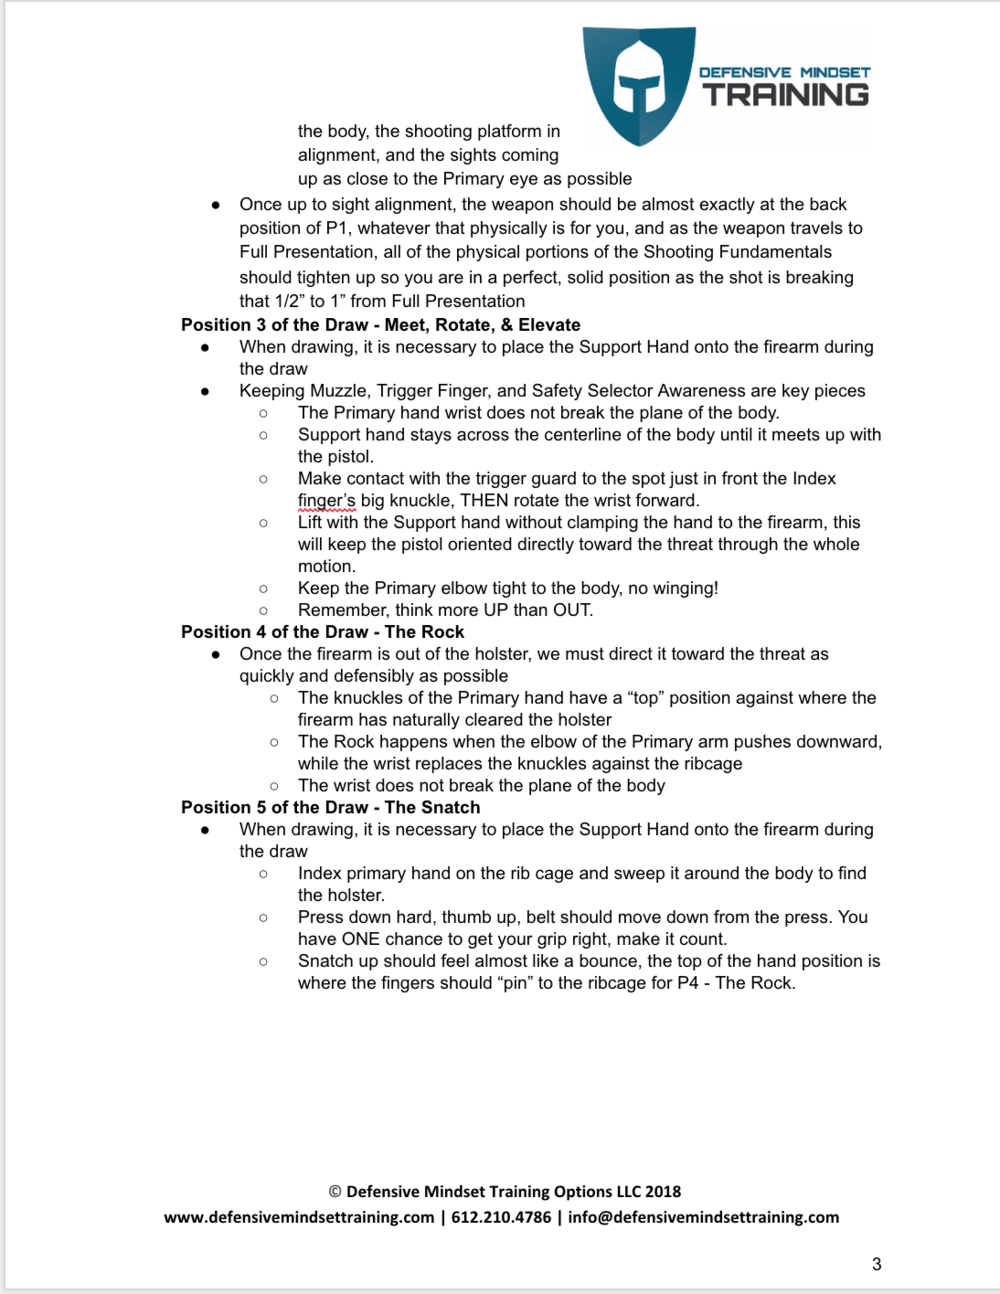 Week 5 Student Guide p 3